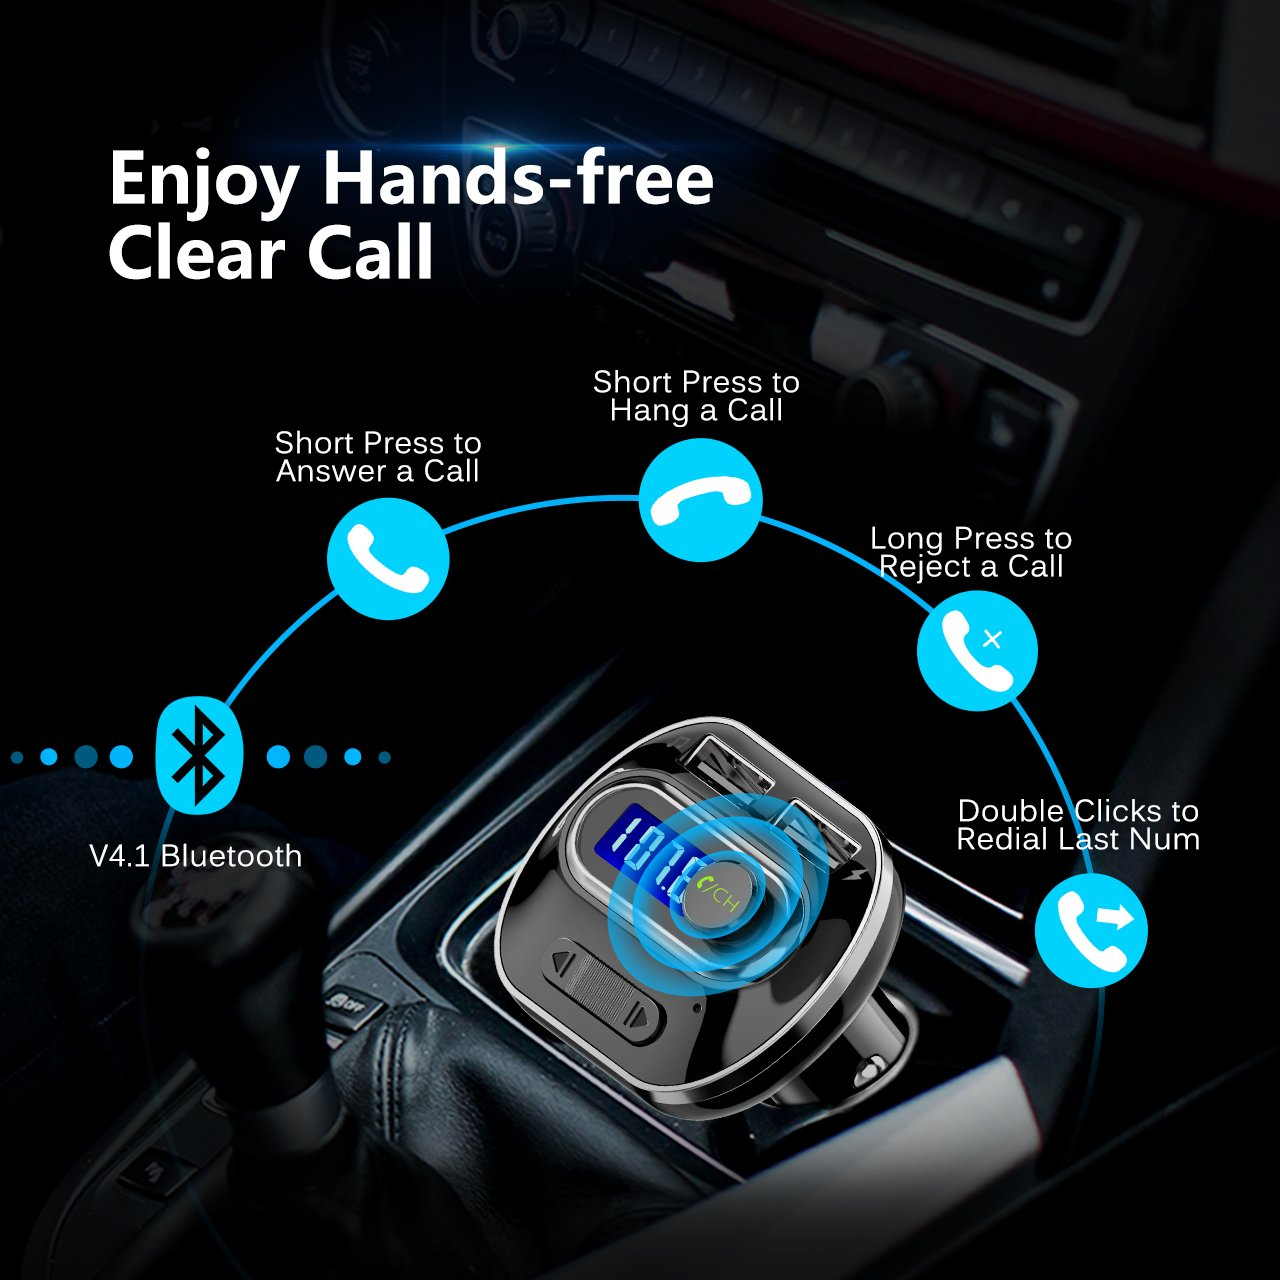 VicTsing (Upgraded Version) V4.1 Bluetooth FM Transmitter for Car, Wireless Radio Transmitter Adapter with Music Player Support Aux Output Input, TF Card and U-Disk, Hands Free and Dual USB Ports by VicTsing (Image #4)